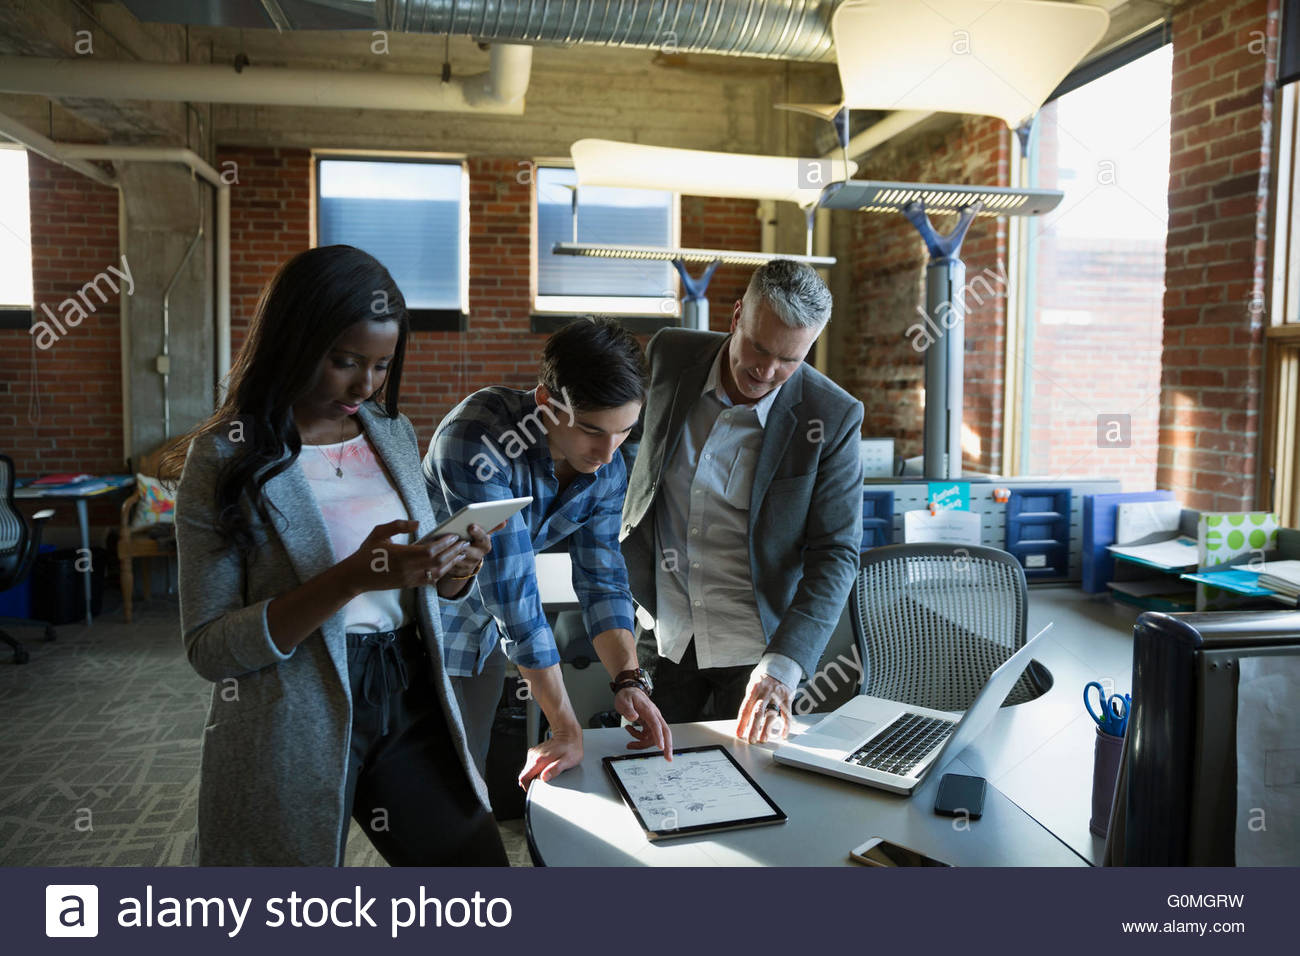 Business people meeting with digital tablets and laptop - Stock Image